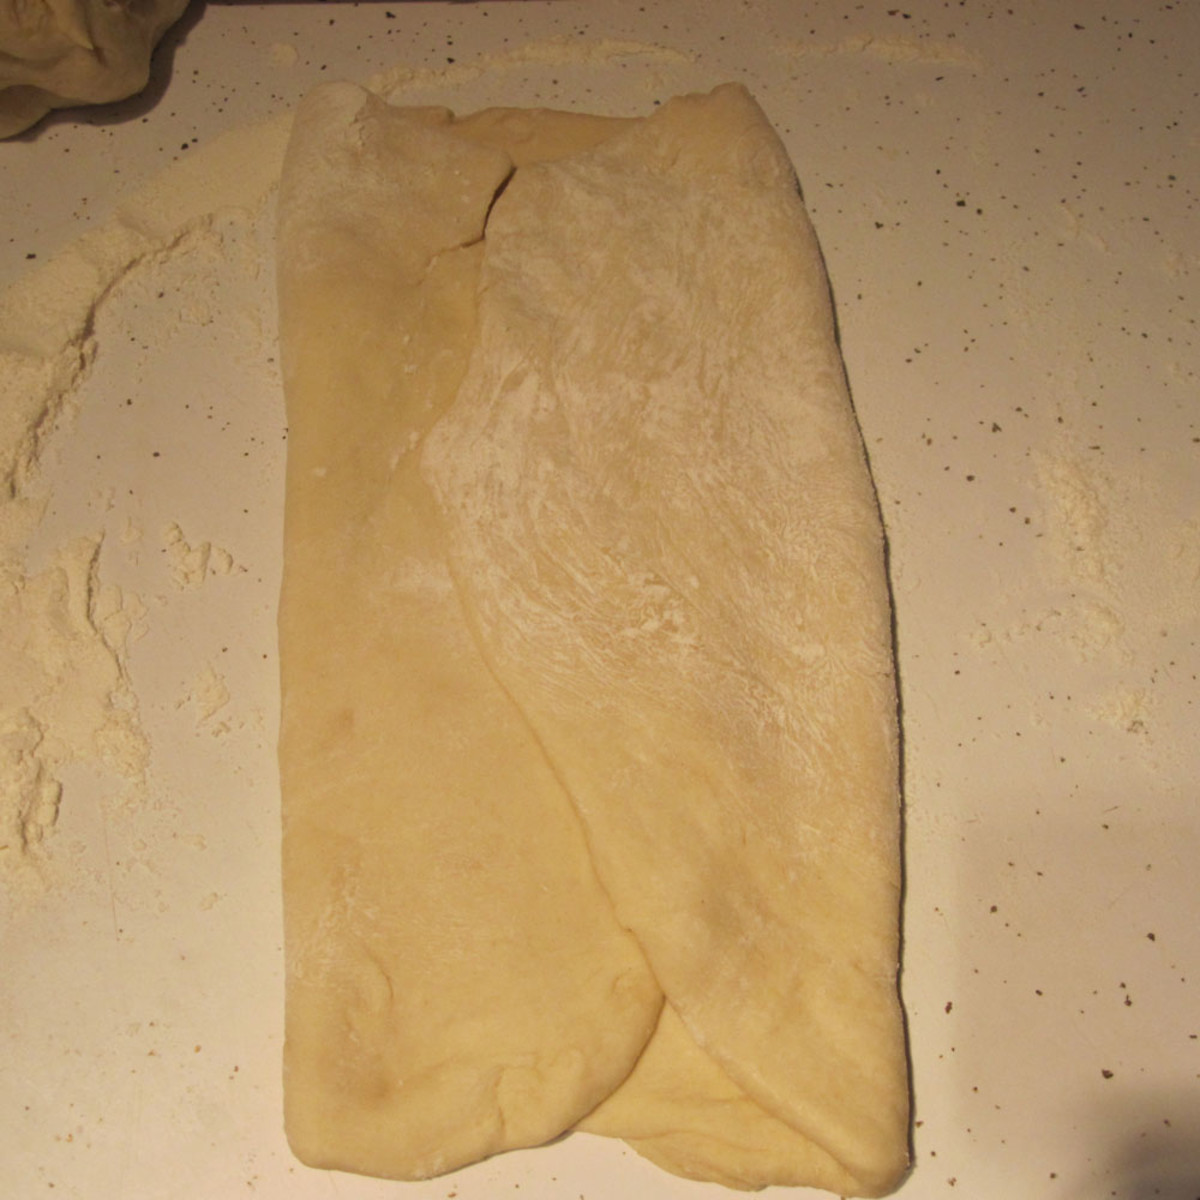 Folding dough in thirds while shaping into loaf.